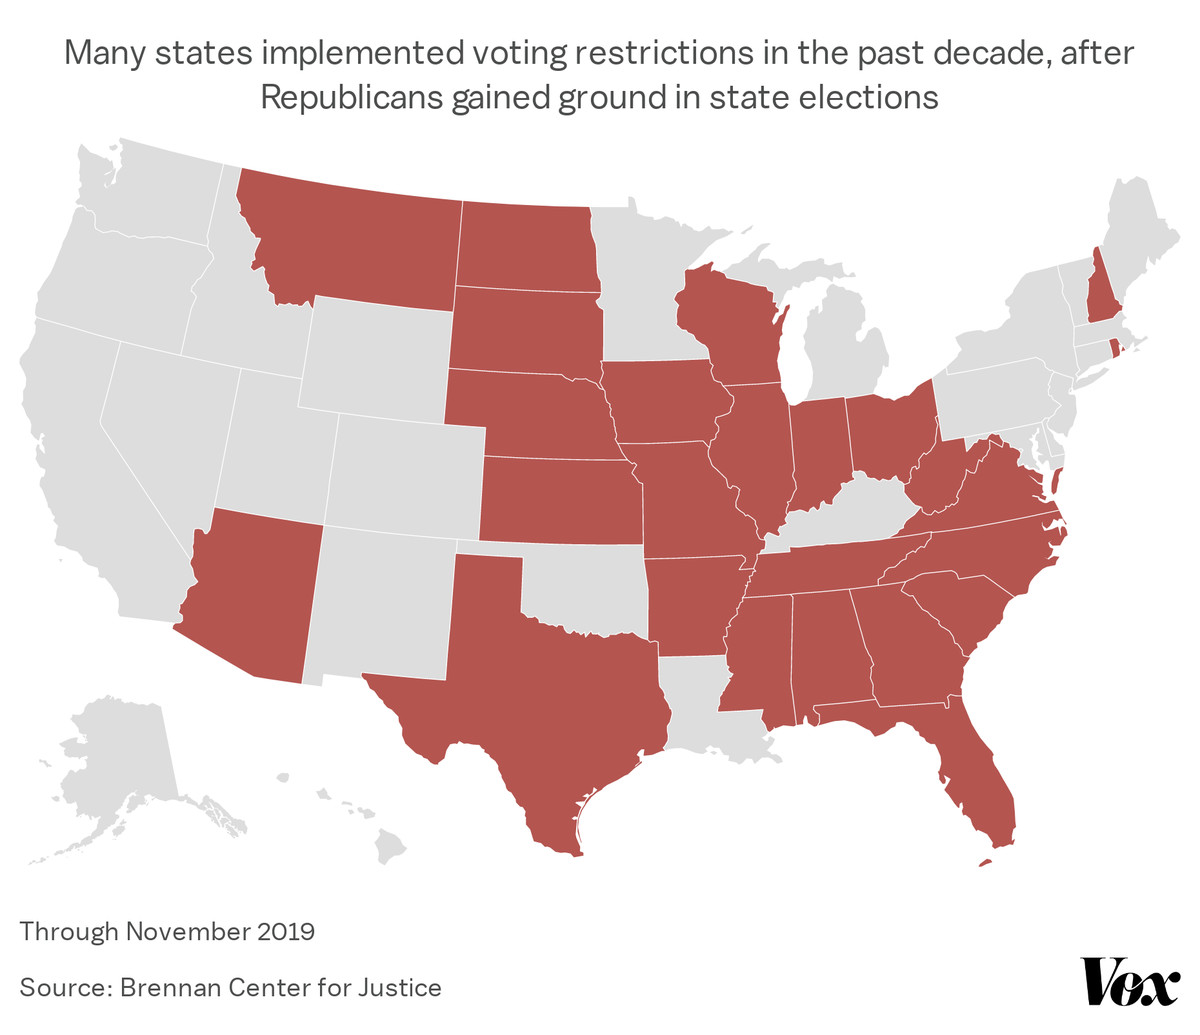 A map showing state voting restrictions enacted 2010-2019, mostly in Republican states.